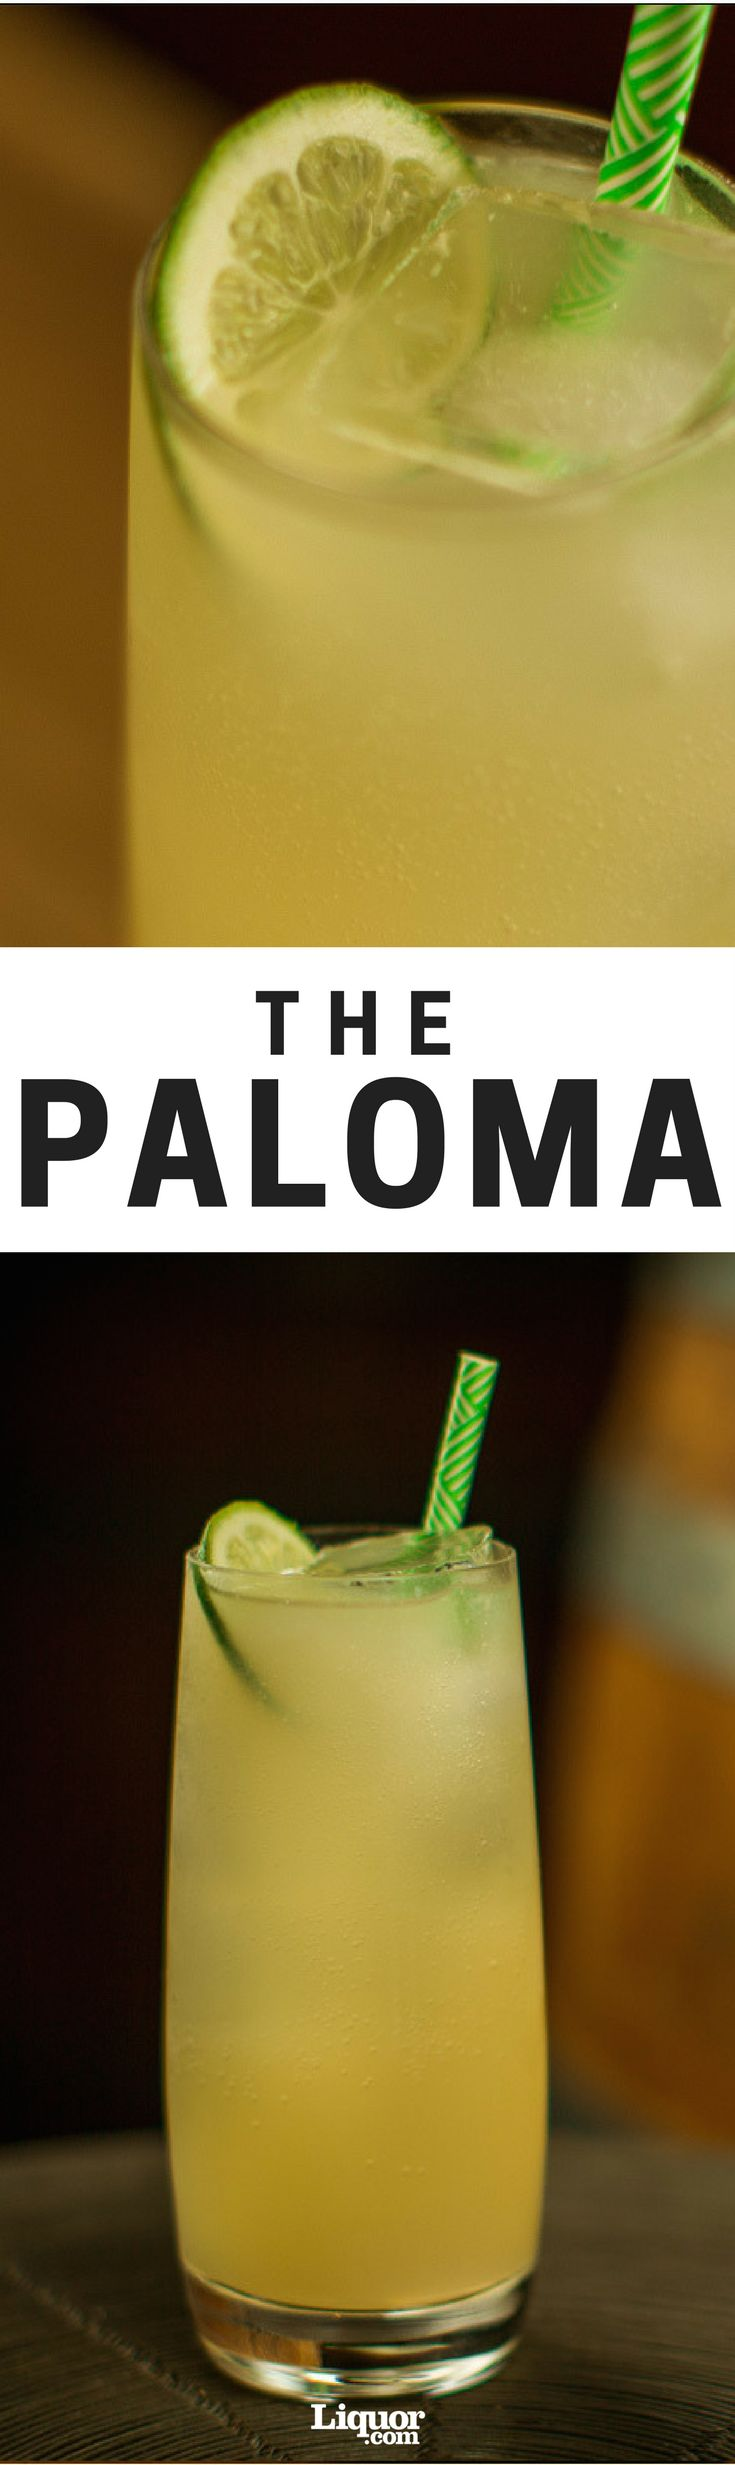 Think the Margarita is the ultimate Mexican cocktail? Think again. The Paloma is a quick and easy classic that can be made right in the glass. Whether drinking solo or with company, this drink will fulfill all your tequila needs.